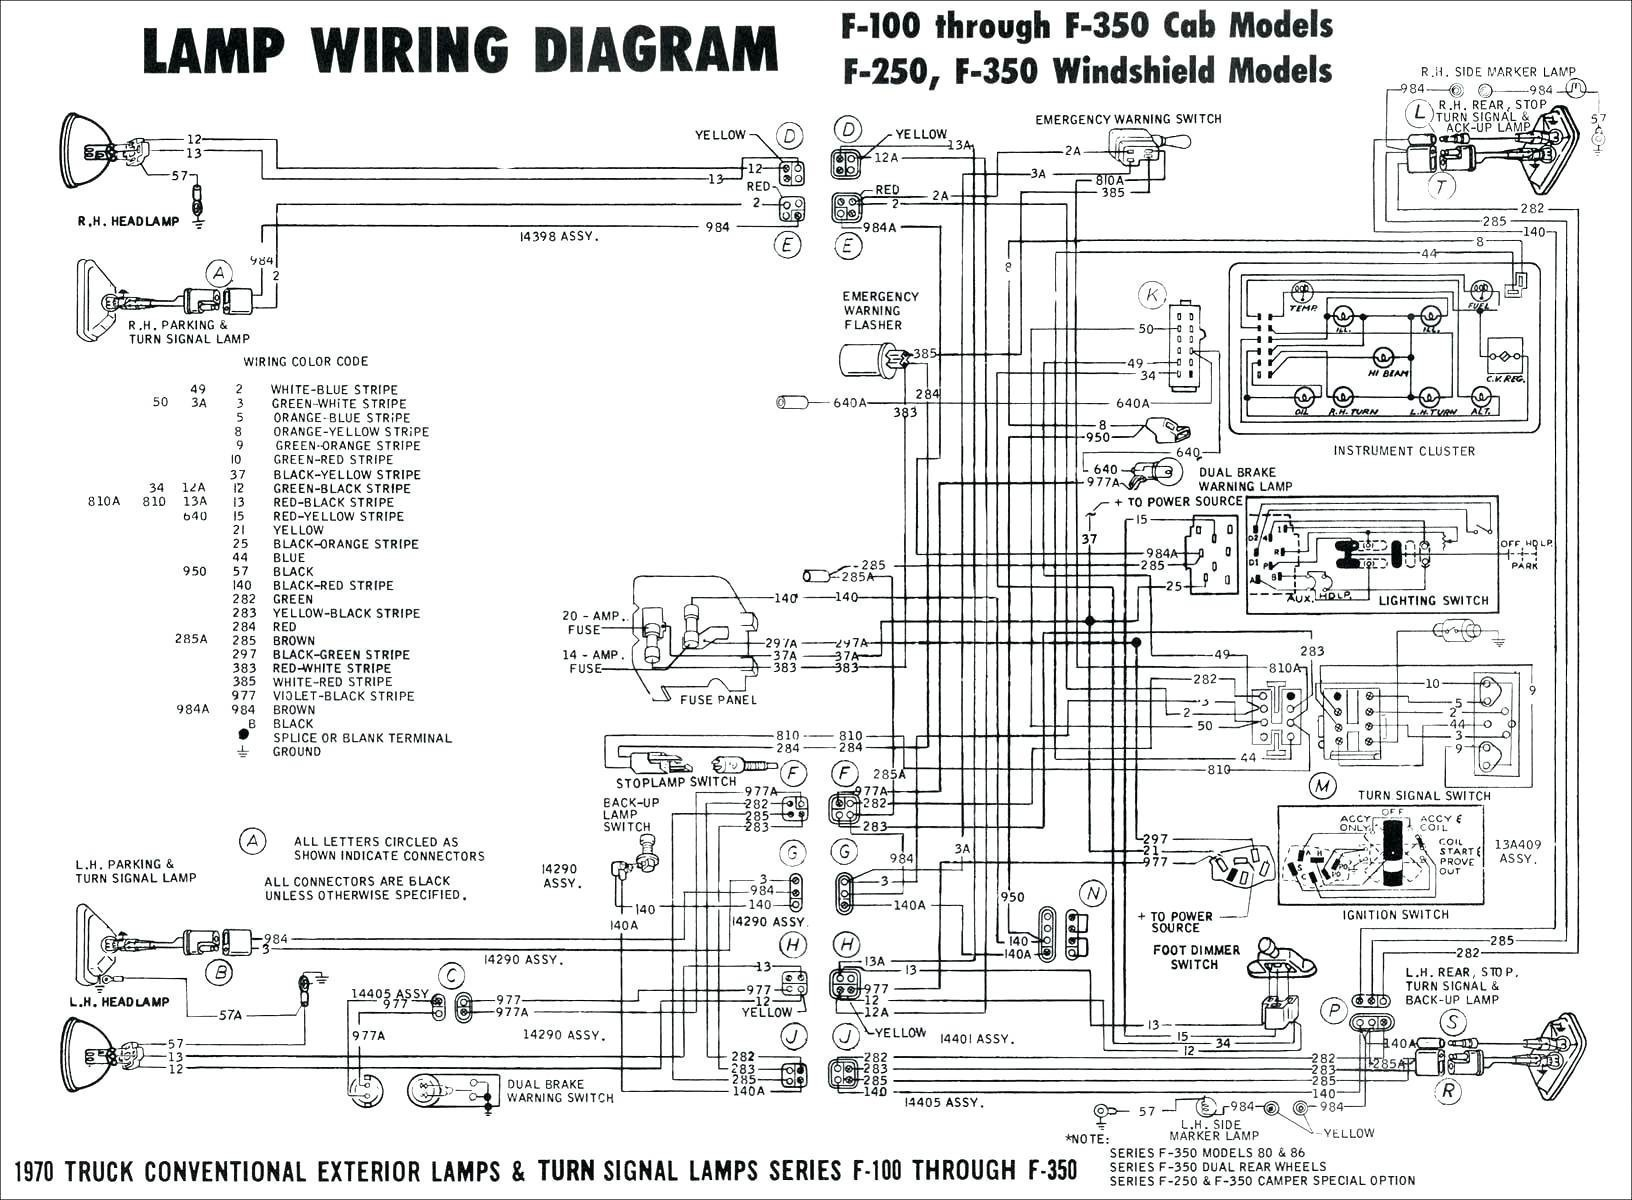 Ford Taurus Fuse Diagram 8 10 From 67 Votes Ford Taurus Fuse Diagram on